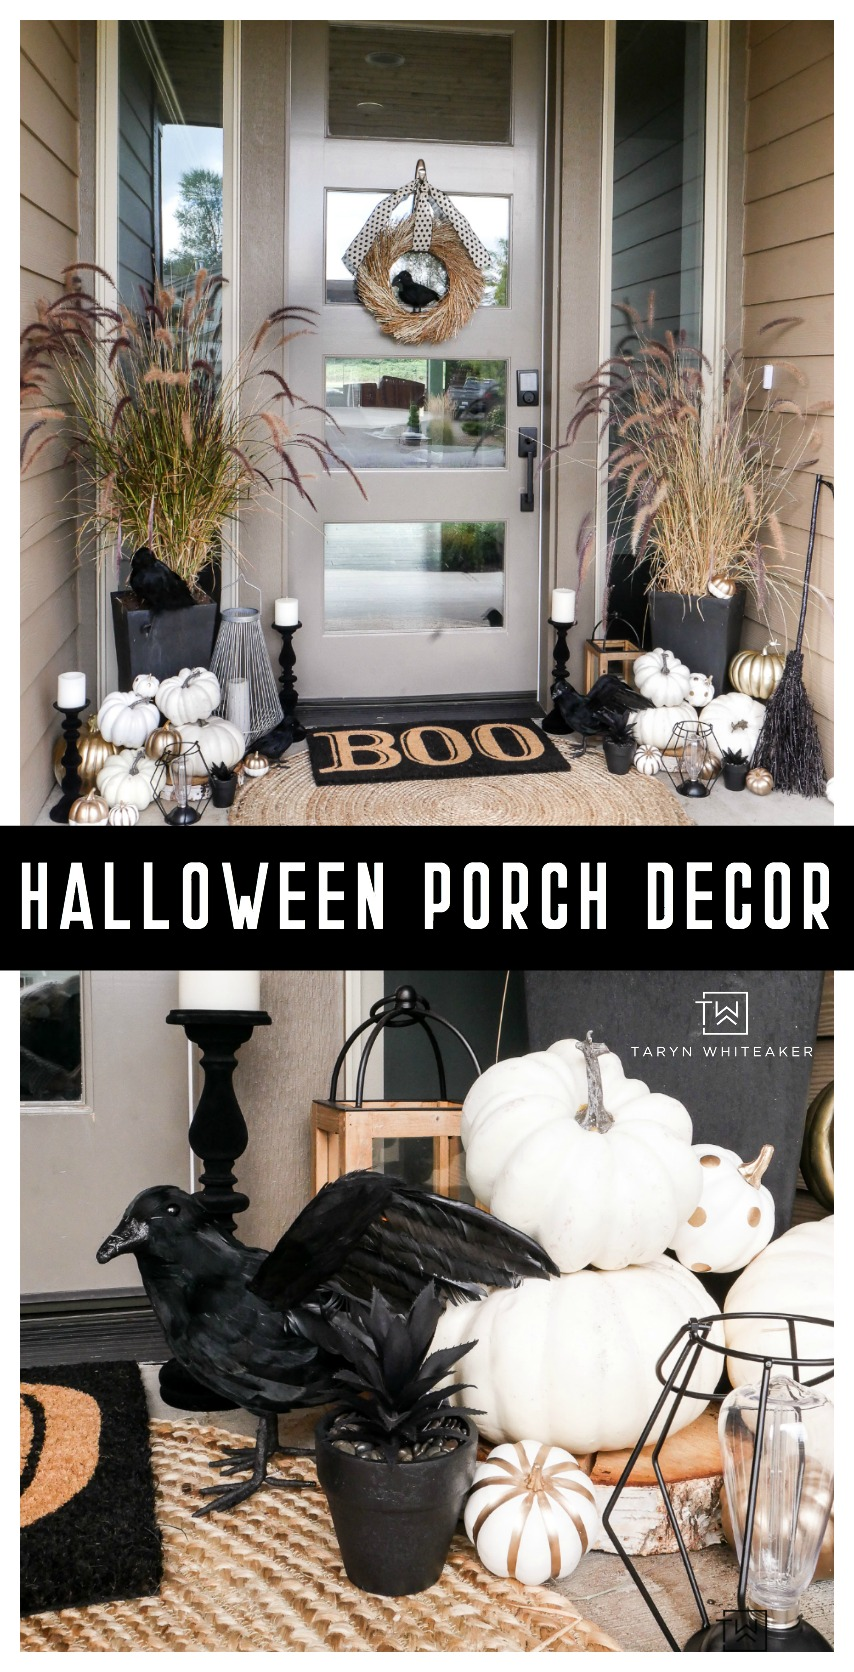 Check out this classy Halloween porch! Love the black and white halloween decor on this modern porch.